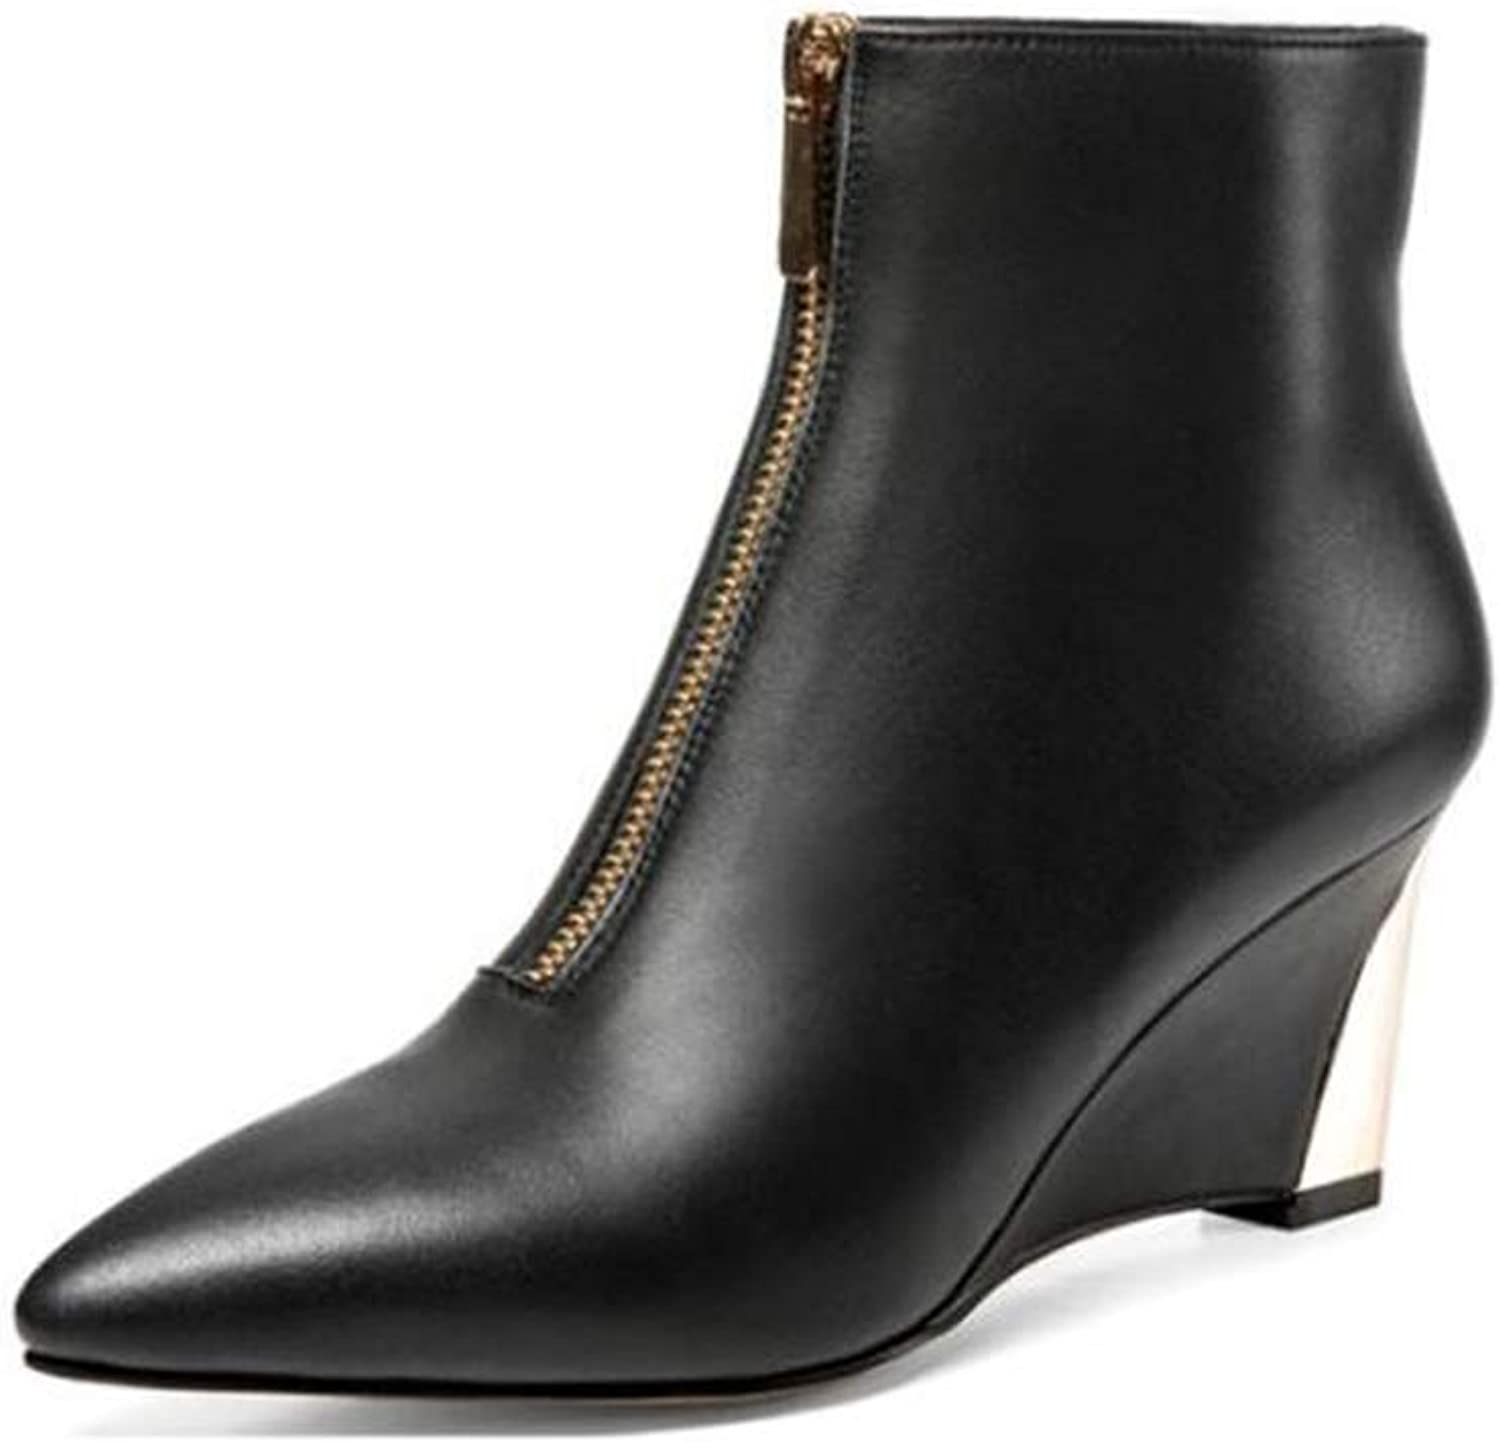 Women's Booties, Pointed Toe Med Heel Ankle Boots Wedge High Heel Front Zipper Fashion Ladies Chelsea Boots (color   Black, Size   39)